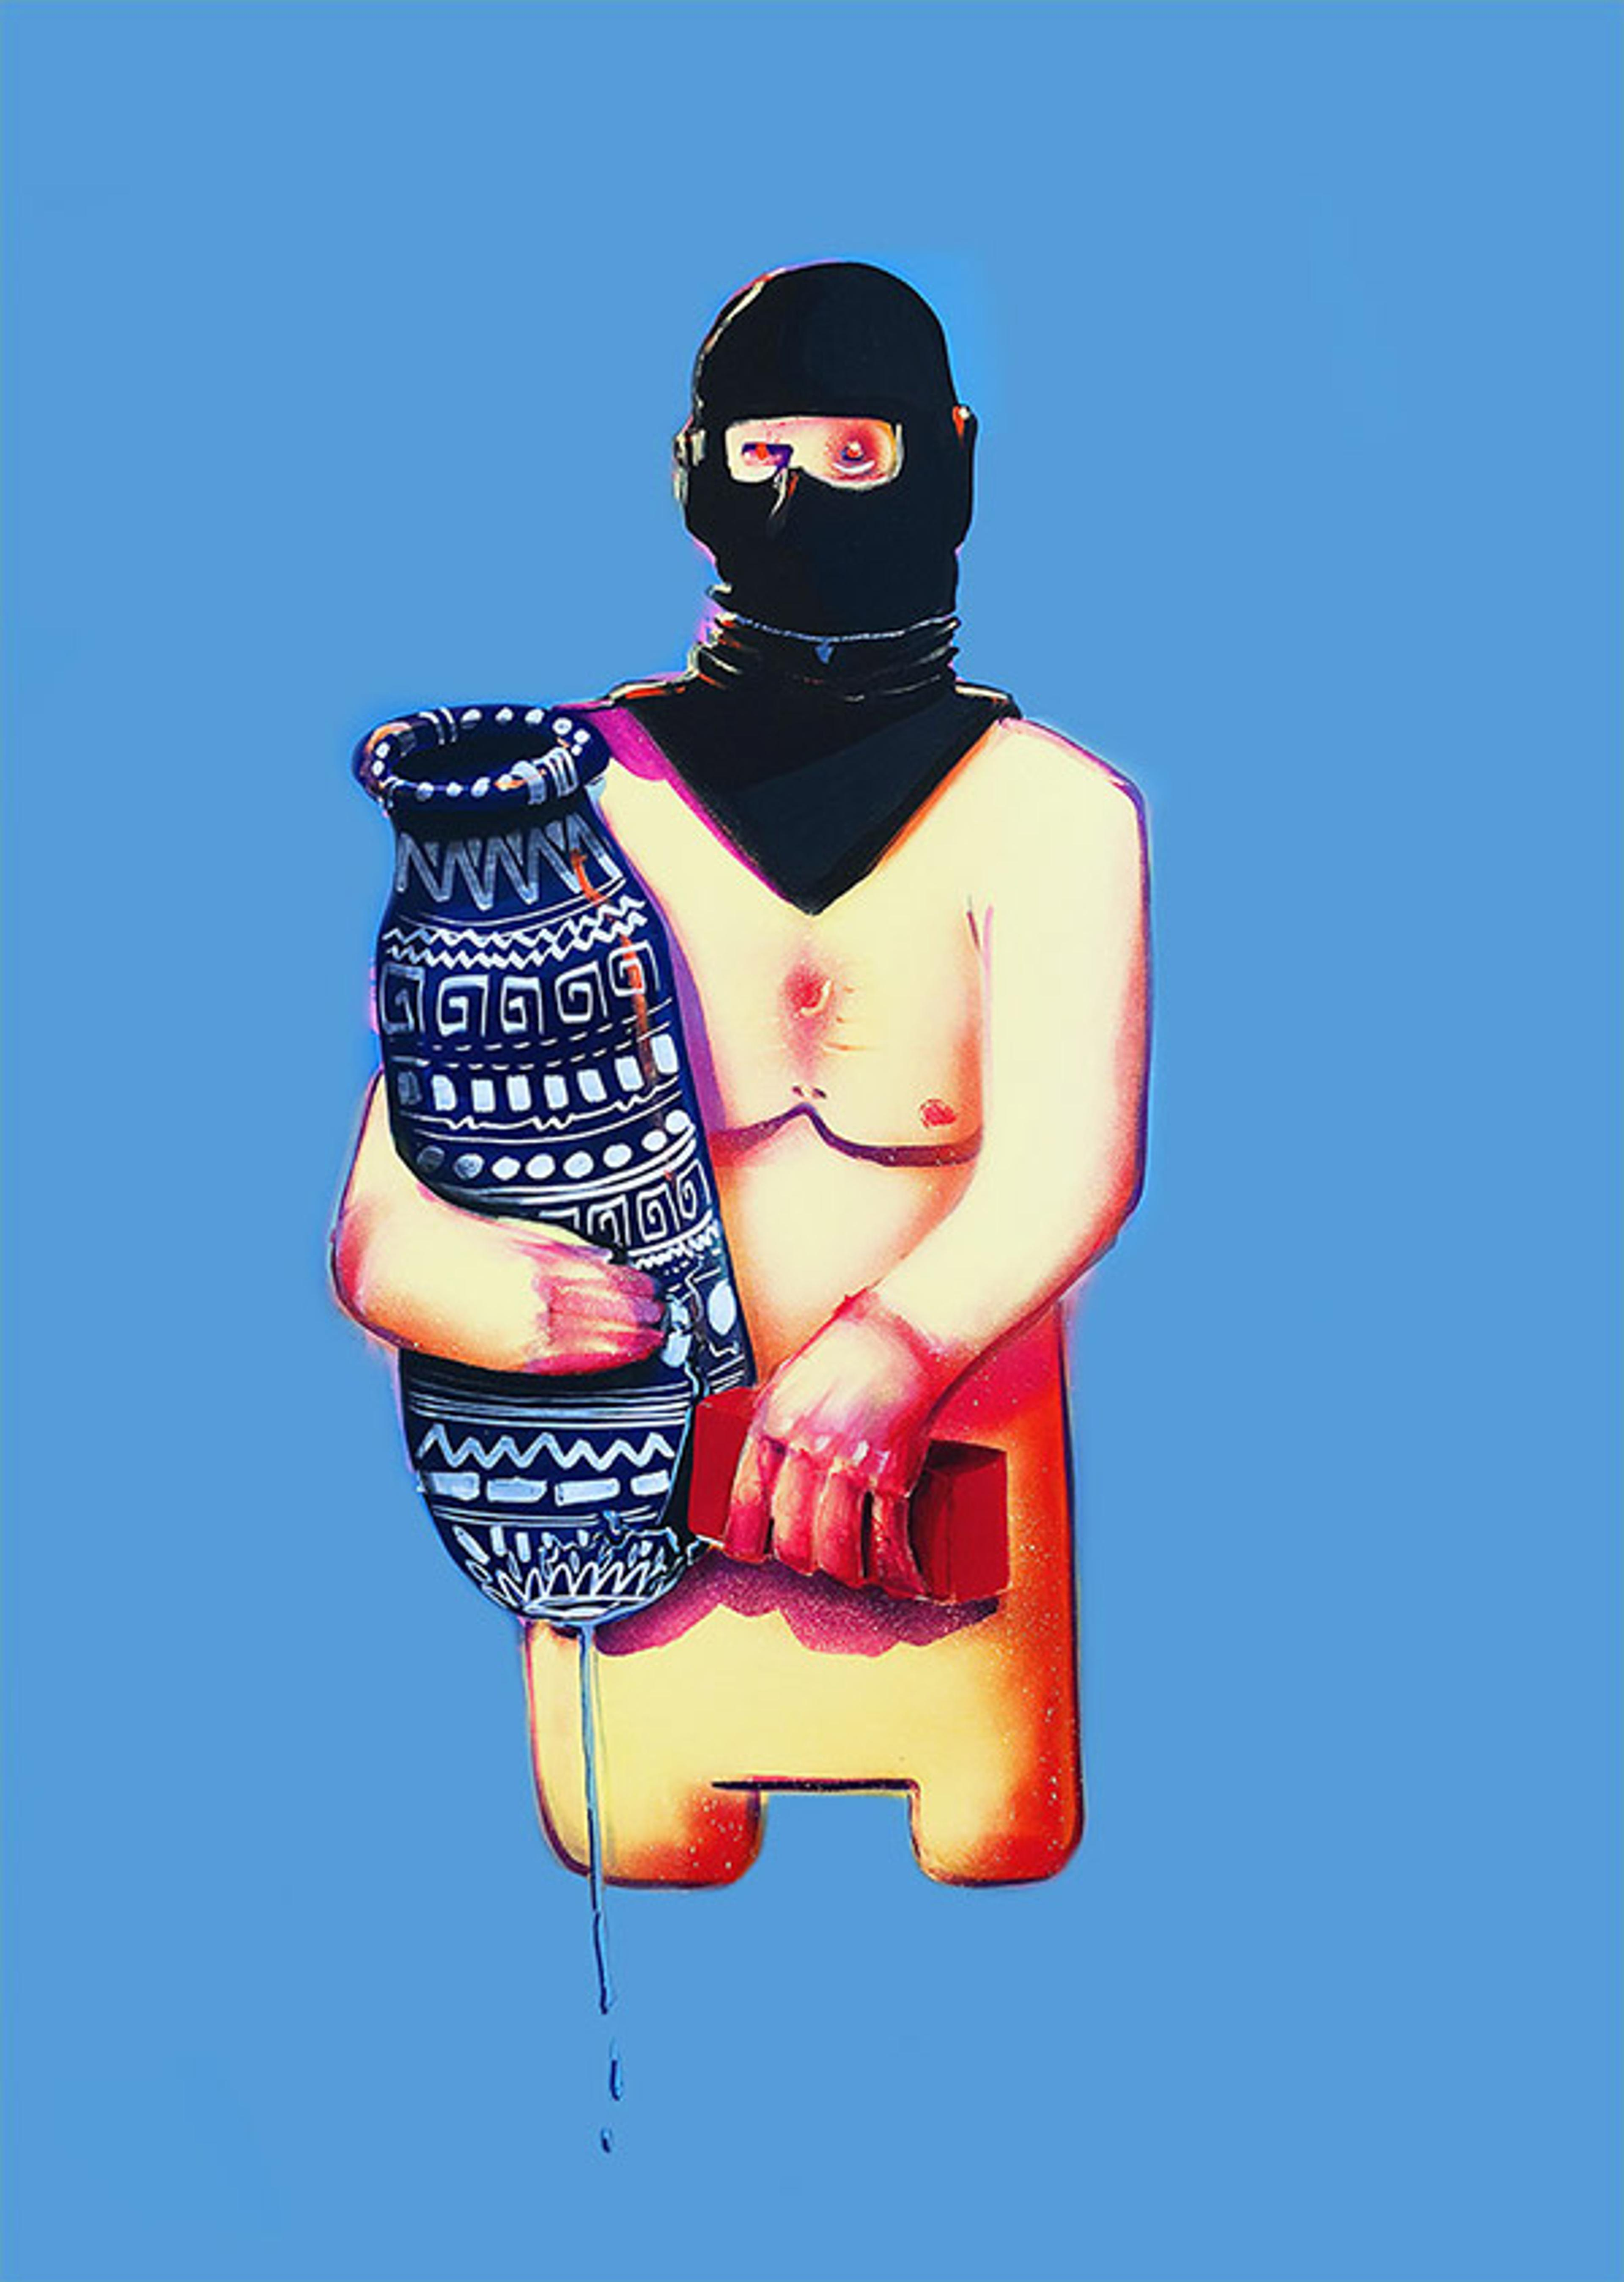 artwork The Protester by IPMC